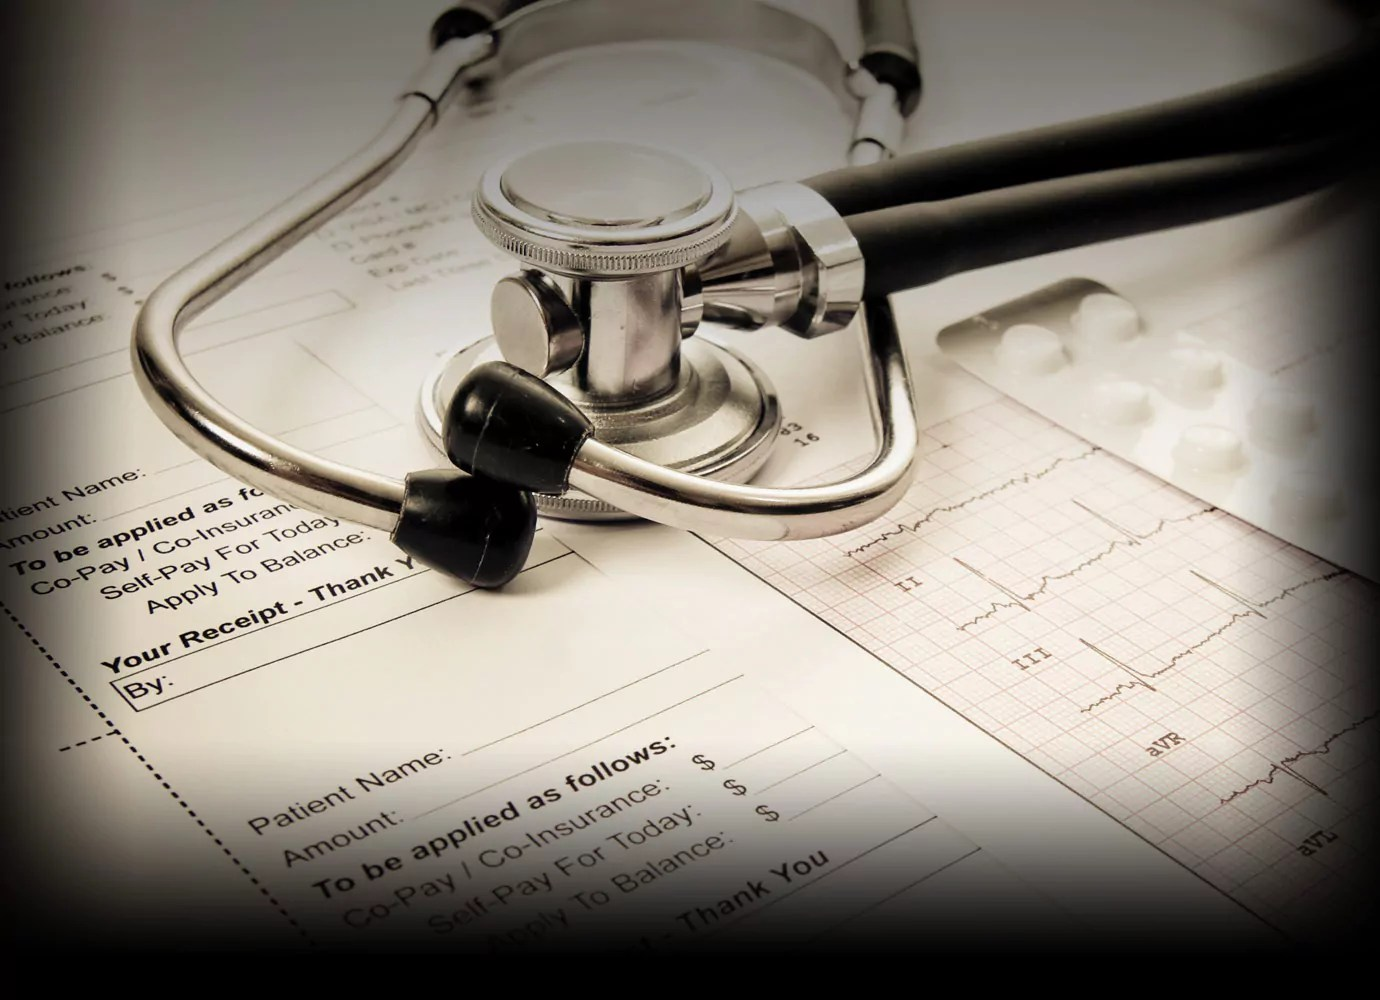 Health Care Fraud: Three Whistleblowers, Known As Relators, Filed Two Lawsuits Under The Qui Tam Provision of The False Claims Act